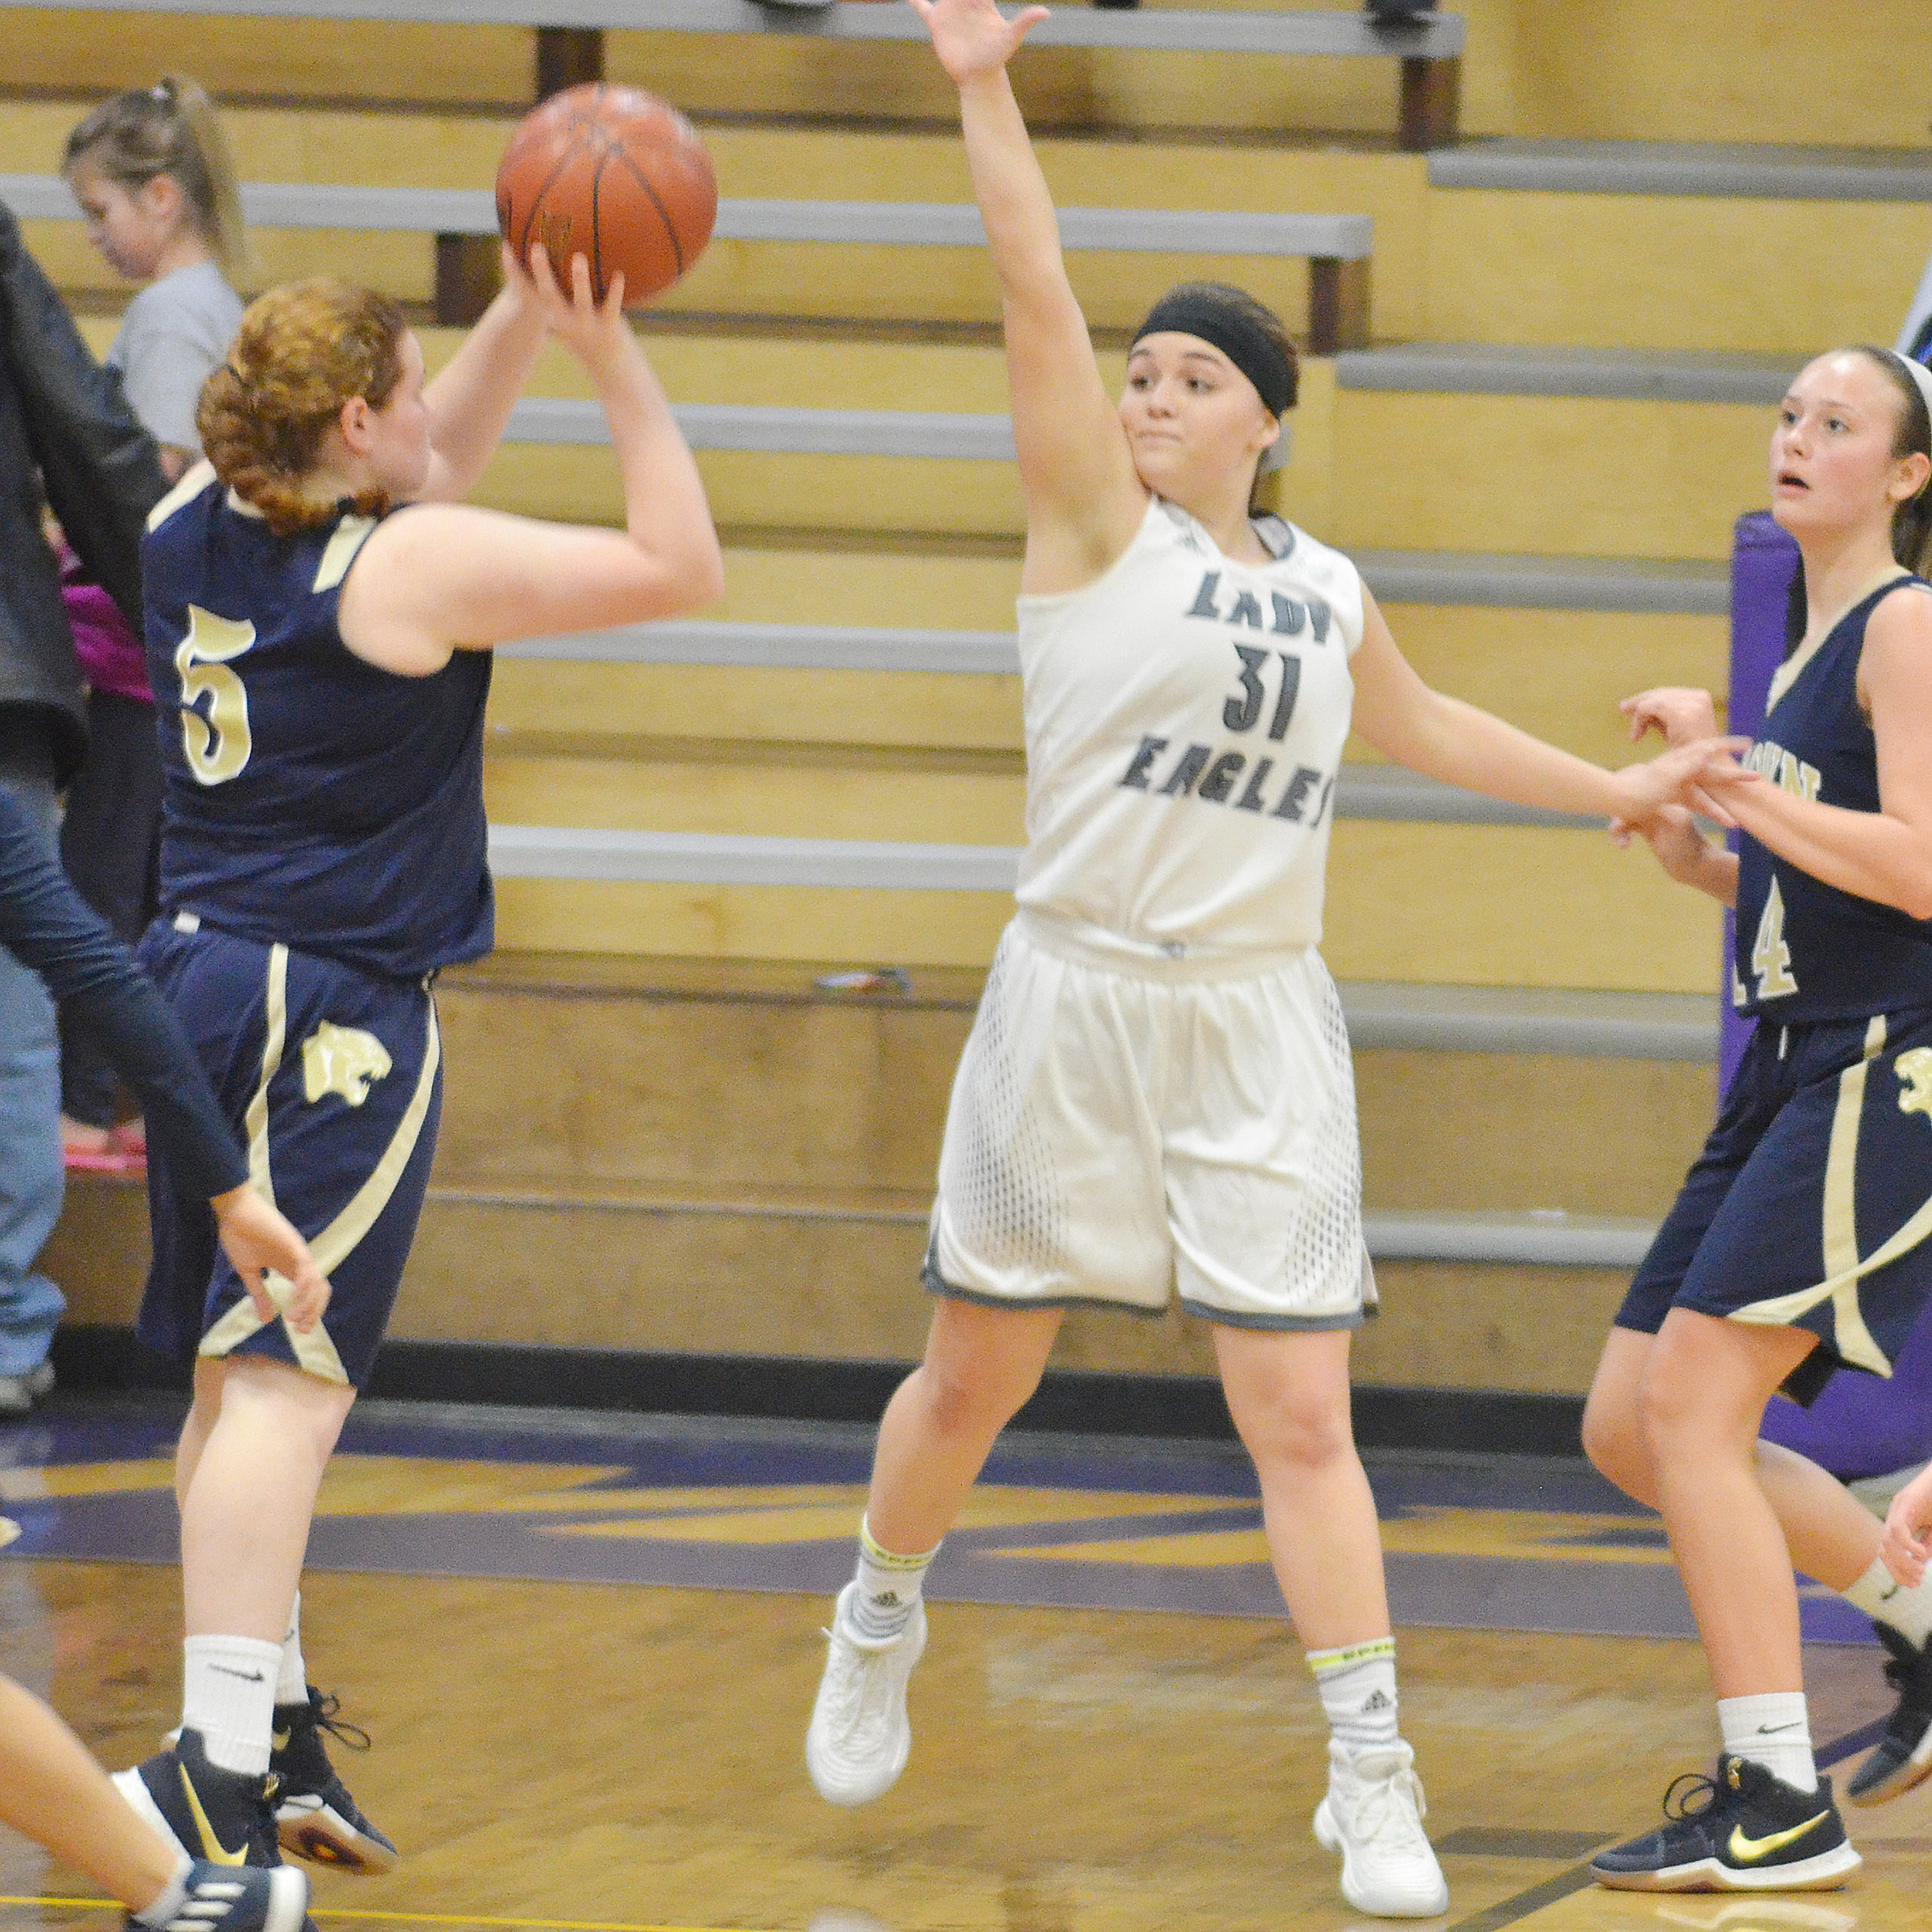 CHS freshman Kenzi Forbis tries to block a shot.